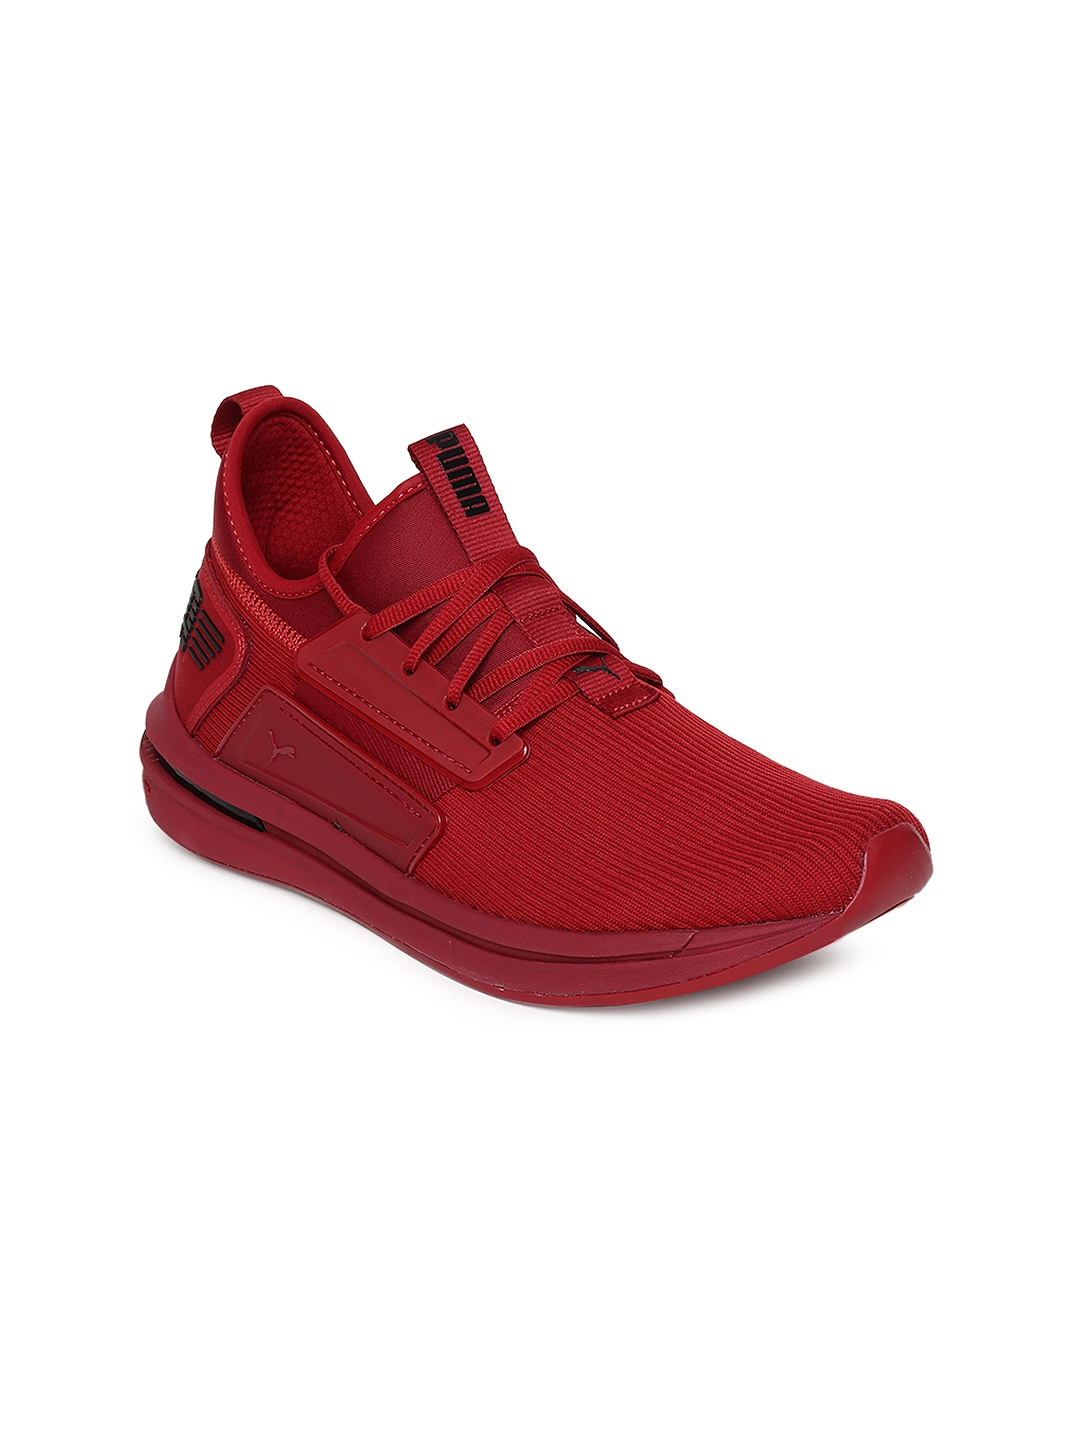 b081f4c96e86 Buy Puma Men Red IGNITE Limitless SR Sneakers - Casual Shoes for Men ...